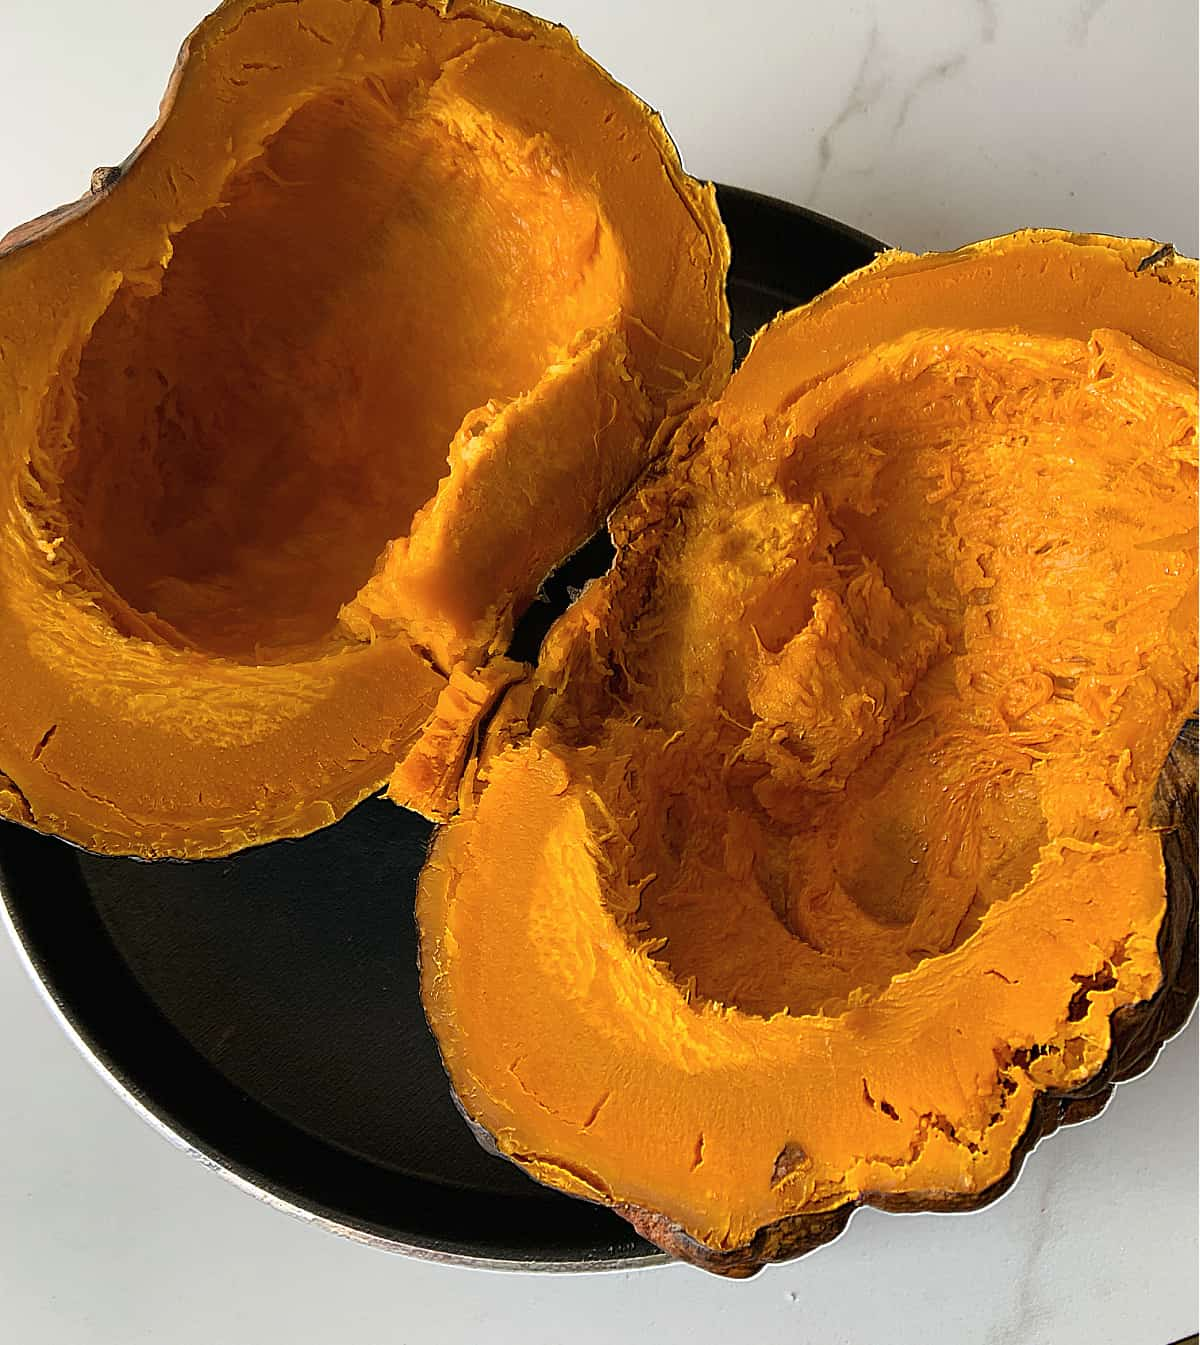 Whole baked pumpkin cut in half on black pan, white marble surface